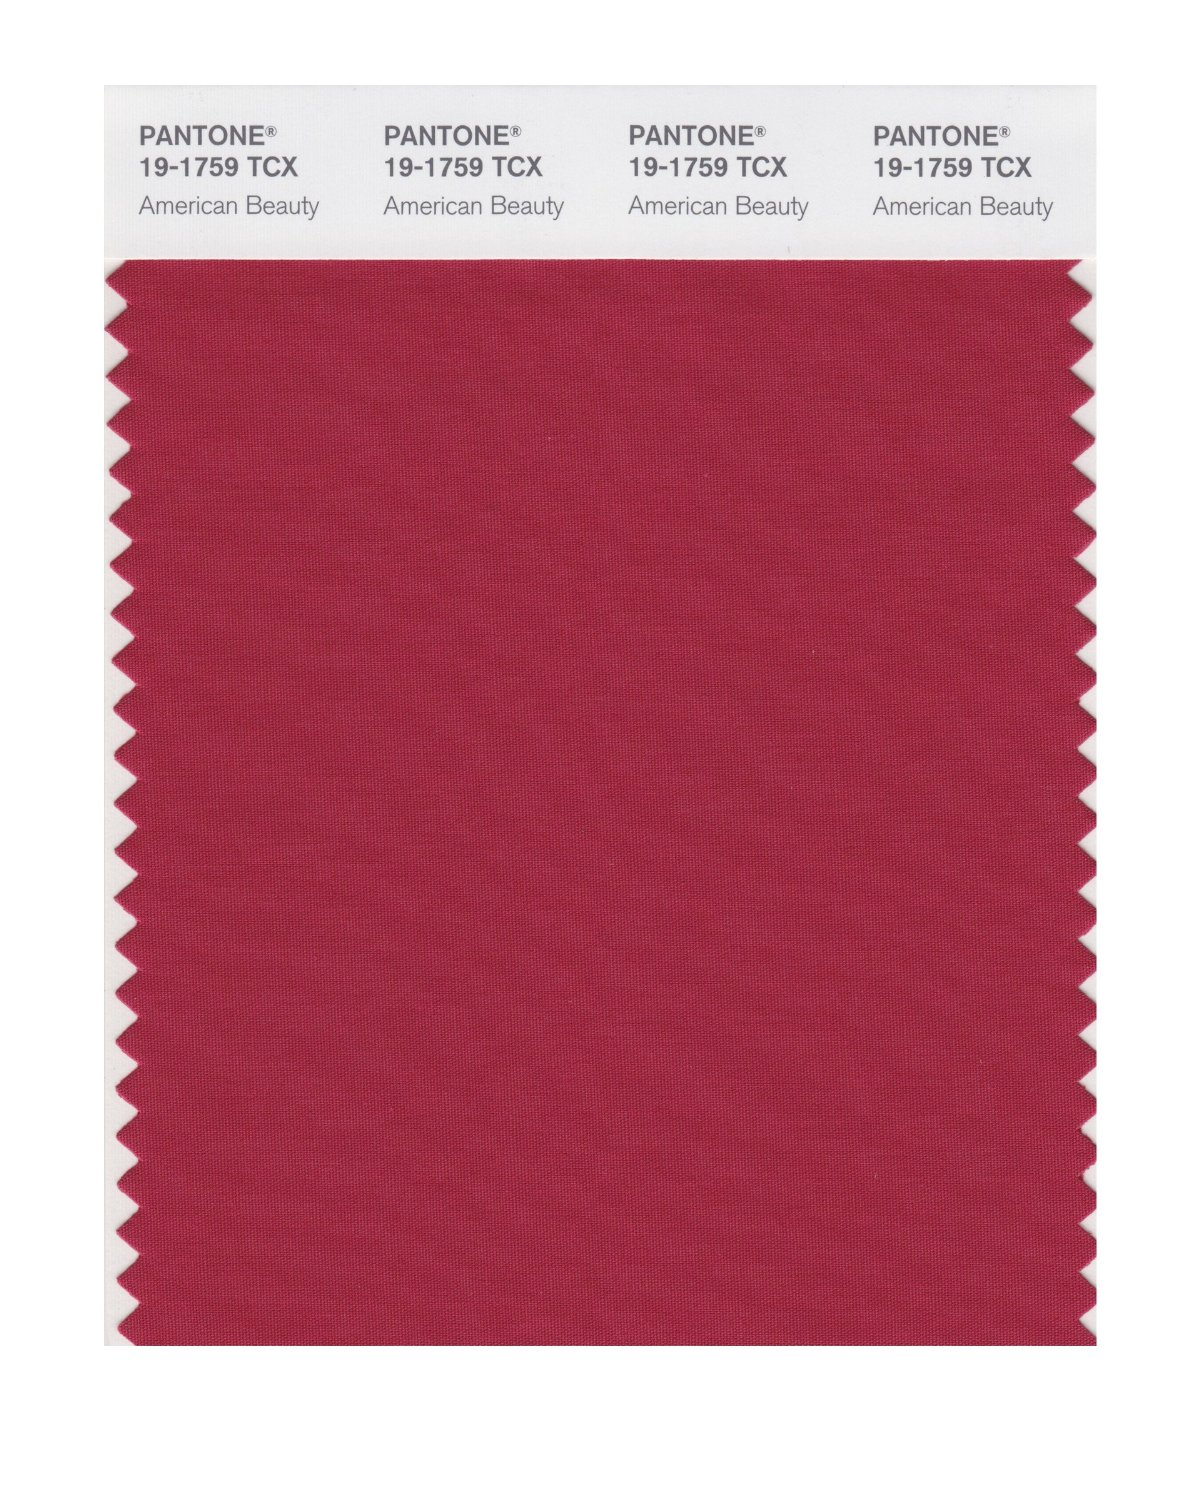 Pantone Smart Swatch 19-1759 American Beauty